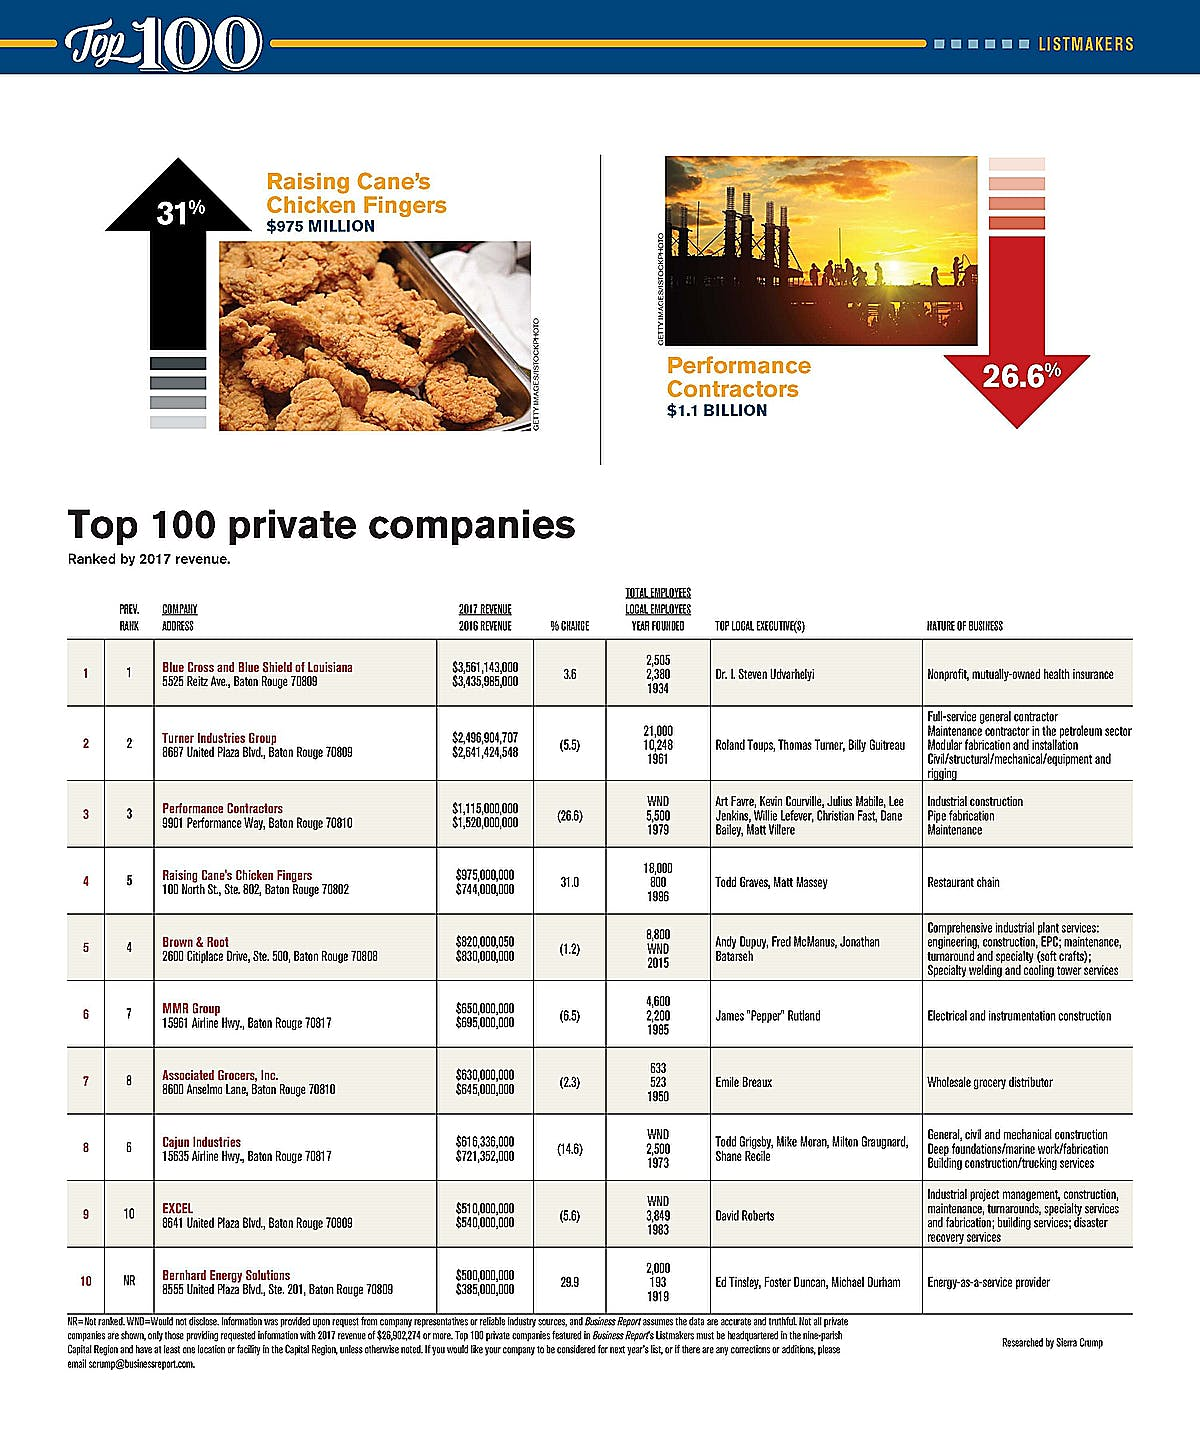 MMR Ranks Sixth in Baton Rouge Business Report's Top 100 Private Companies